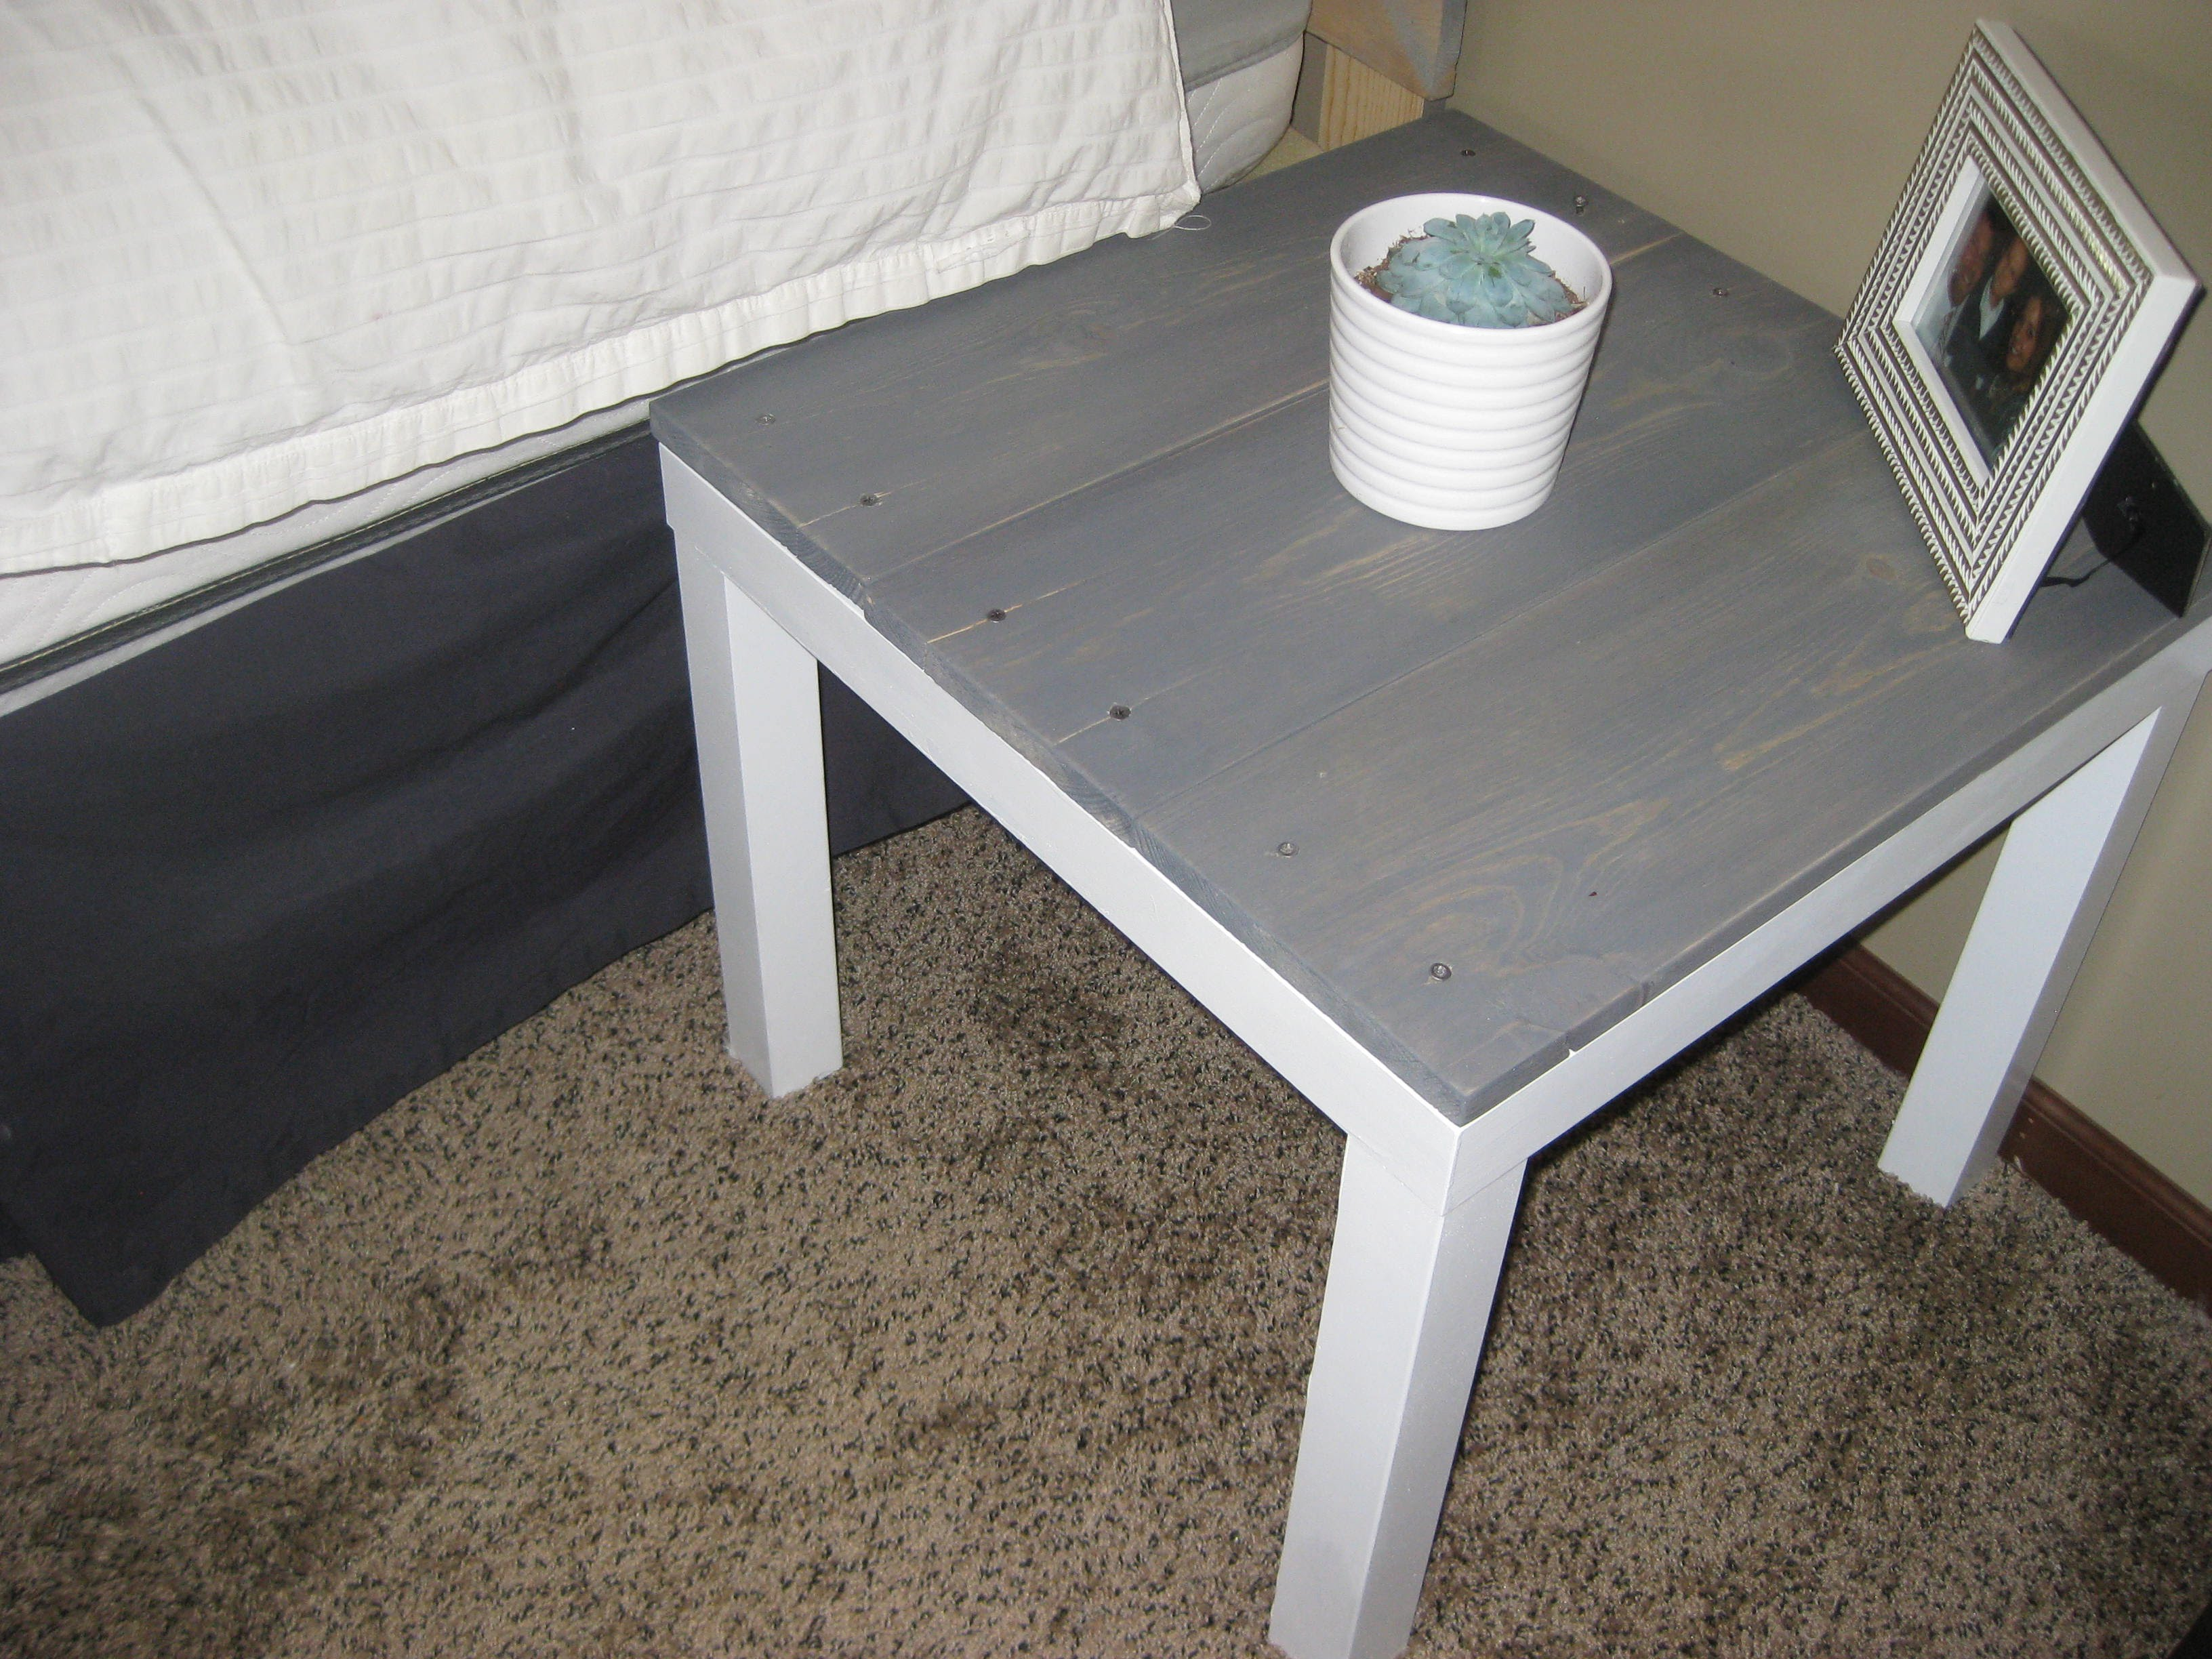 diy end table ikea hack for under cat litter box easy country runners hobby lobby accent tables gold sofa living room centerpiece round extendable dining and chairs turned monarch